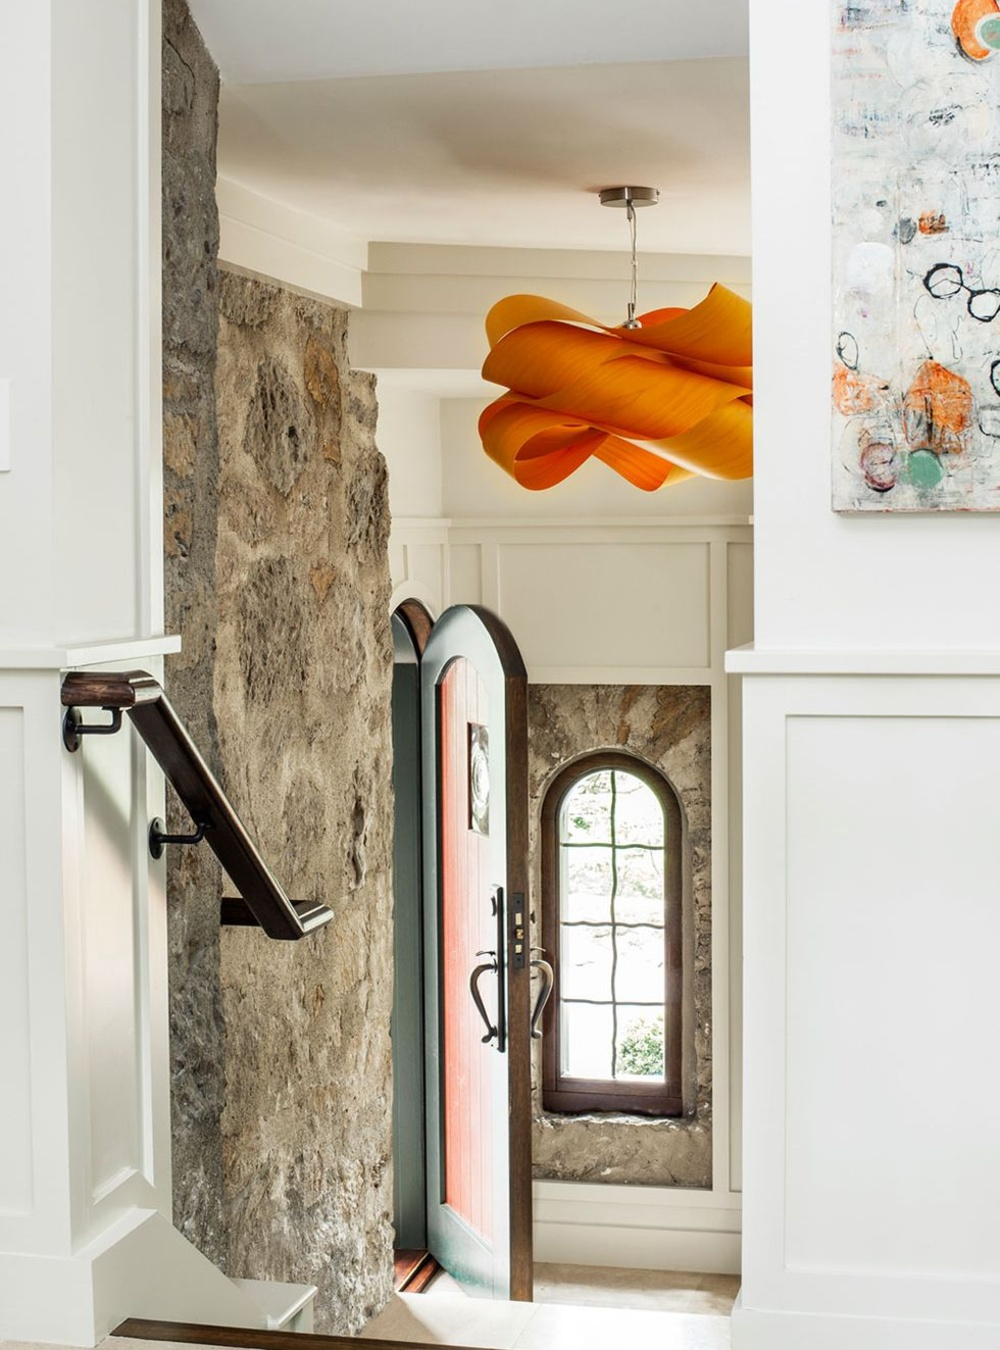 entryway lighting ideas 22 Outrageously Stunning Entryway Lighting Ideas 22 Outrageously Stunning Entryway Lighting Ideas 1 6